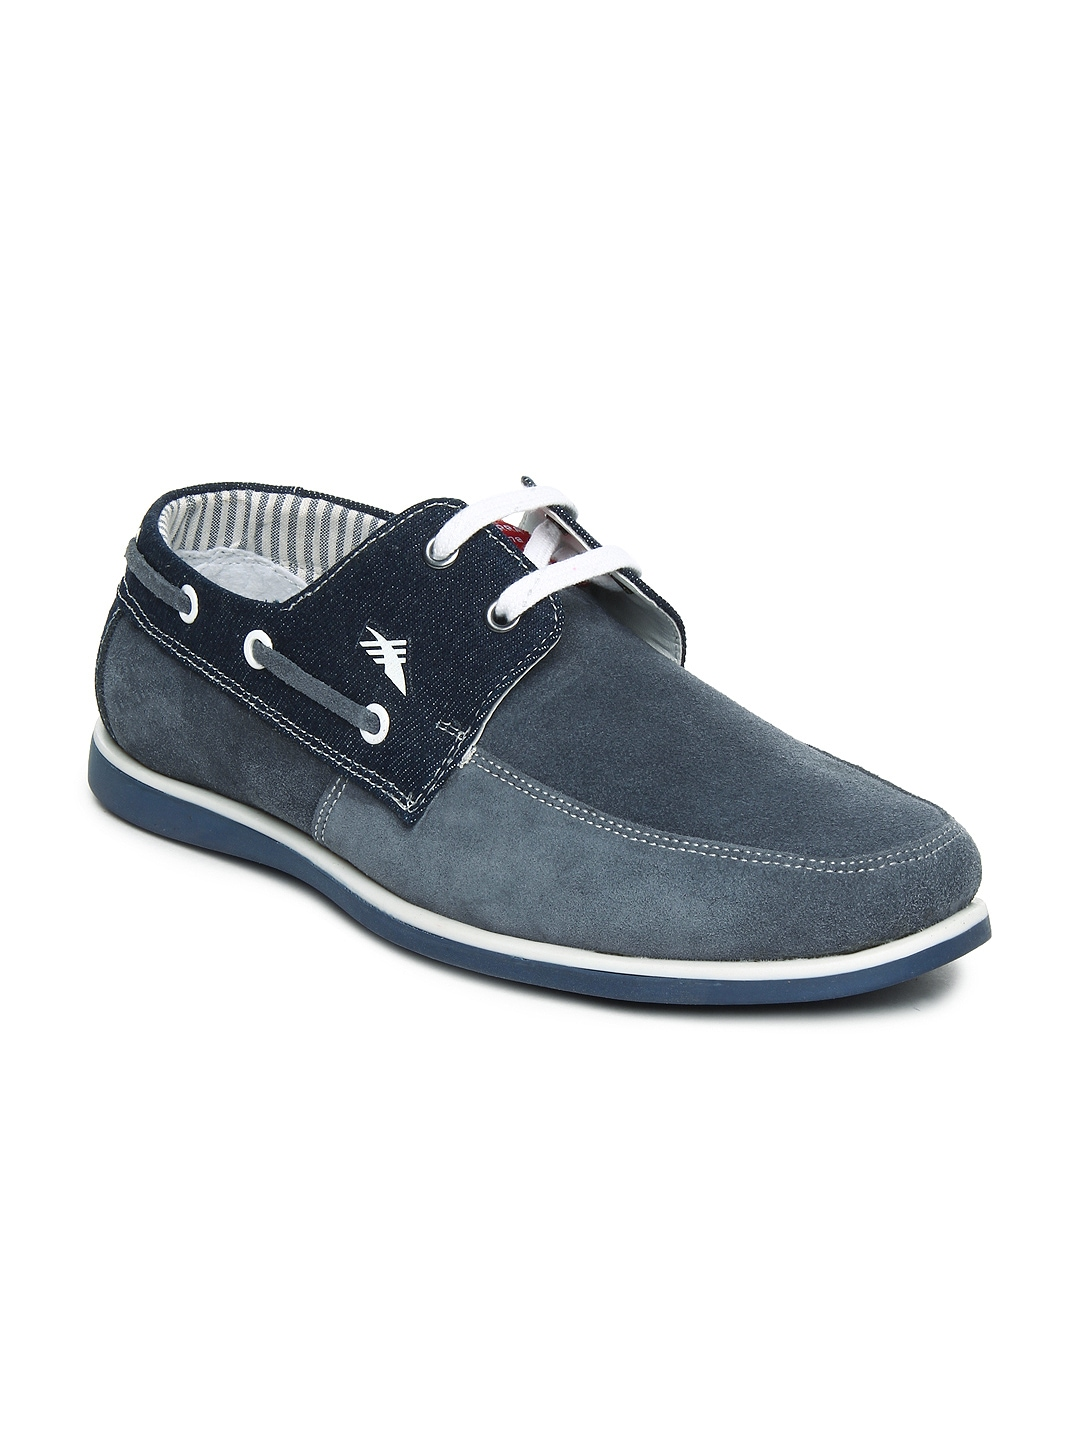 High Sierra Shoes Products